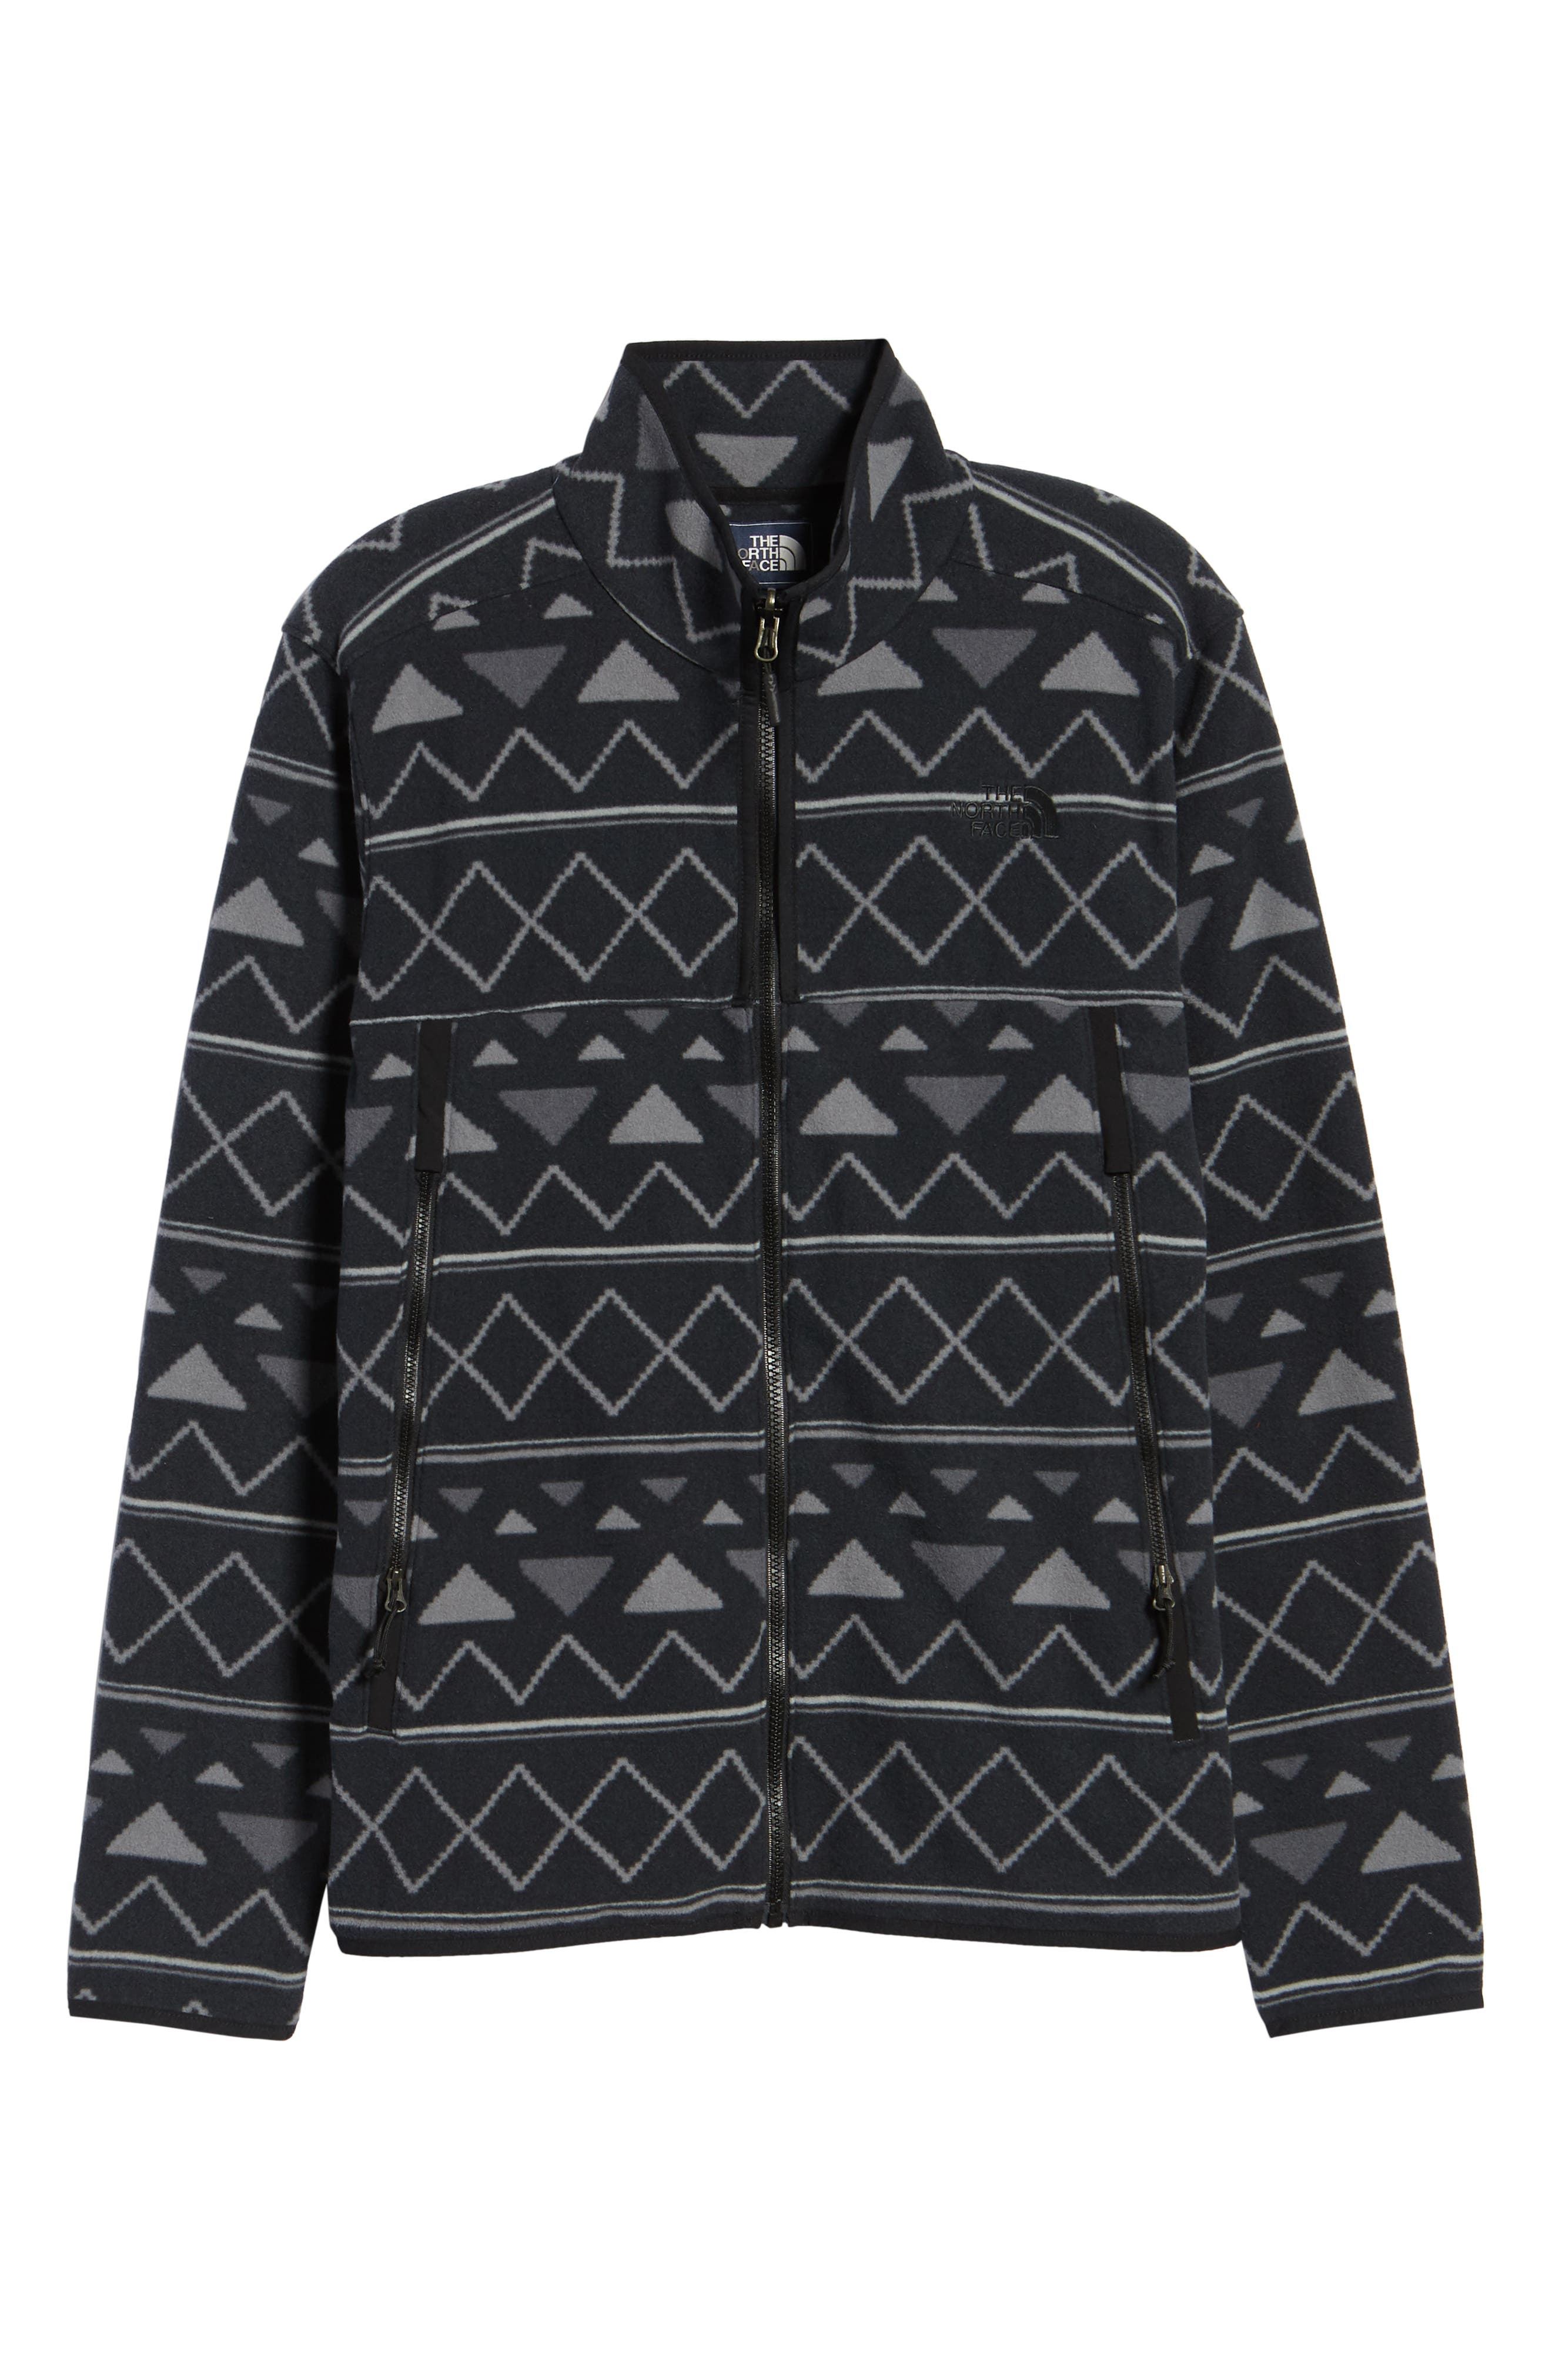 Glacier Alpine Jacket,                             Alternate thumbnail 6, color,                             TNF BLACK TRIANGLE STRIPE